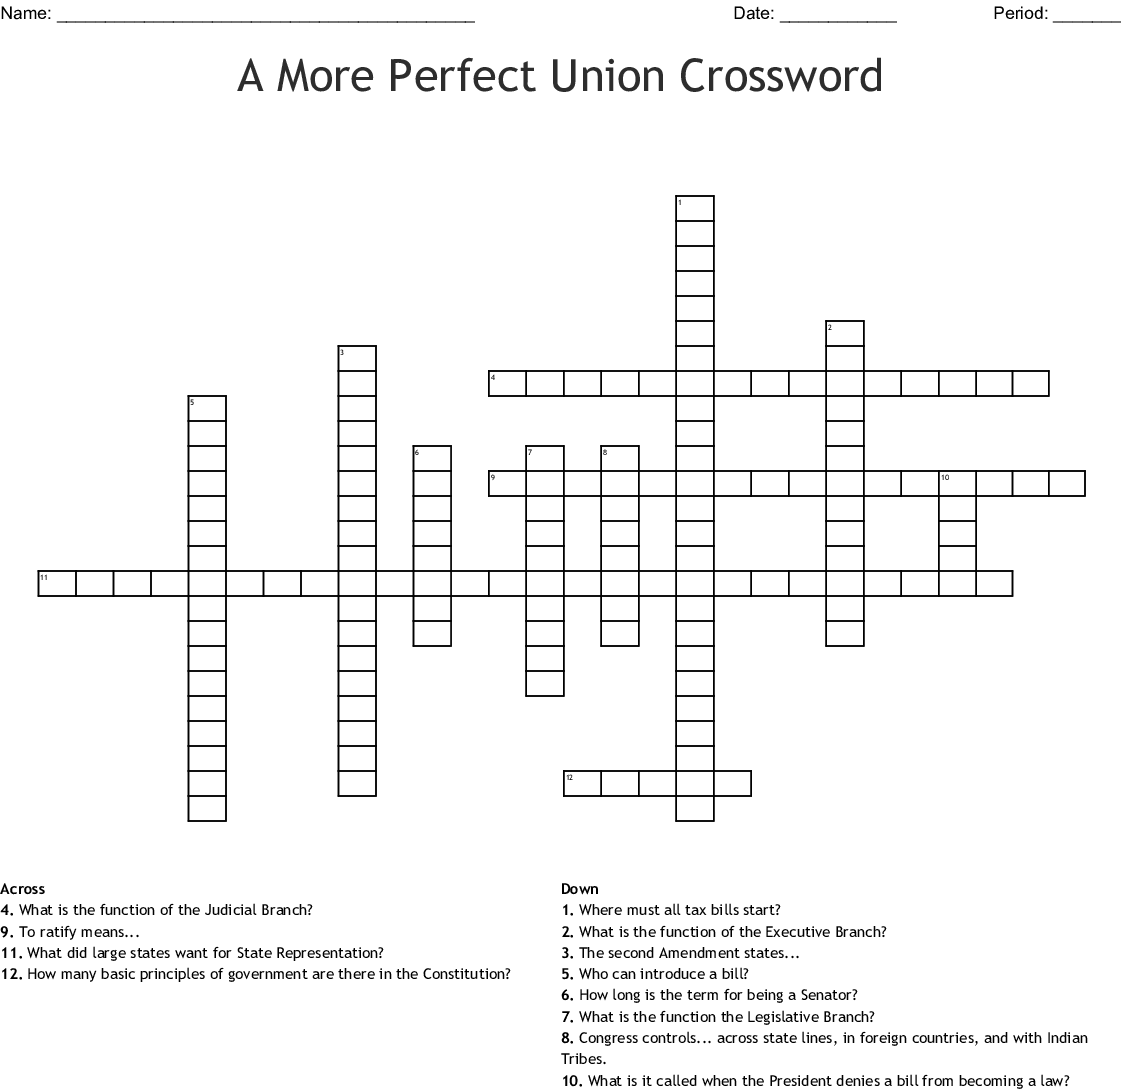 A More Perfect Union Crossword